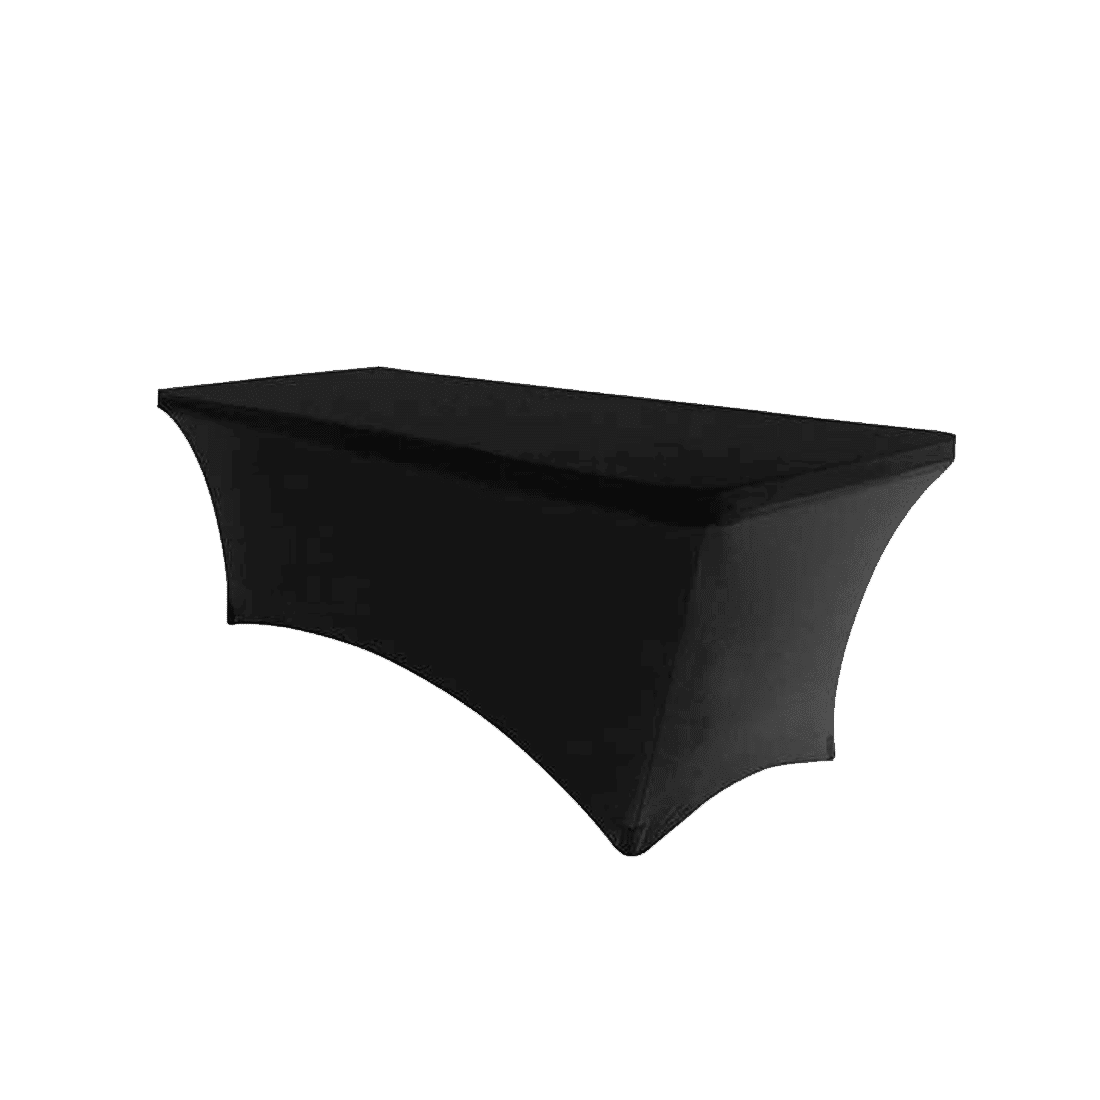 Design Black Tablecloth 6 ft spandex black tablecloth luxe event rental tablecloth